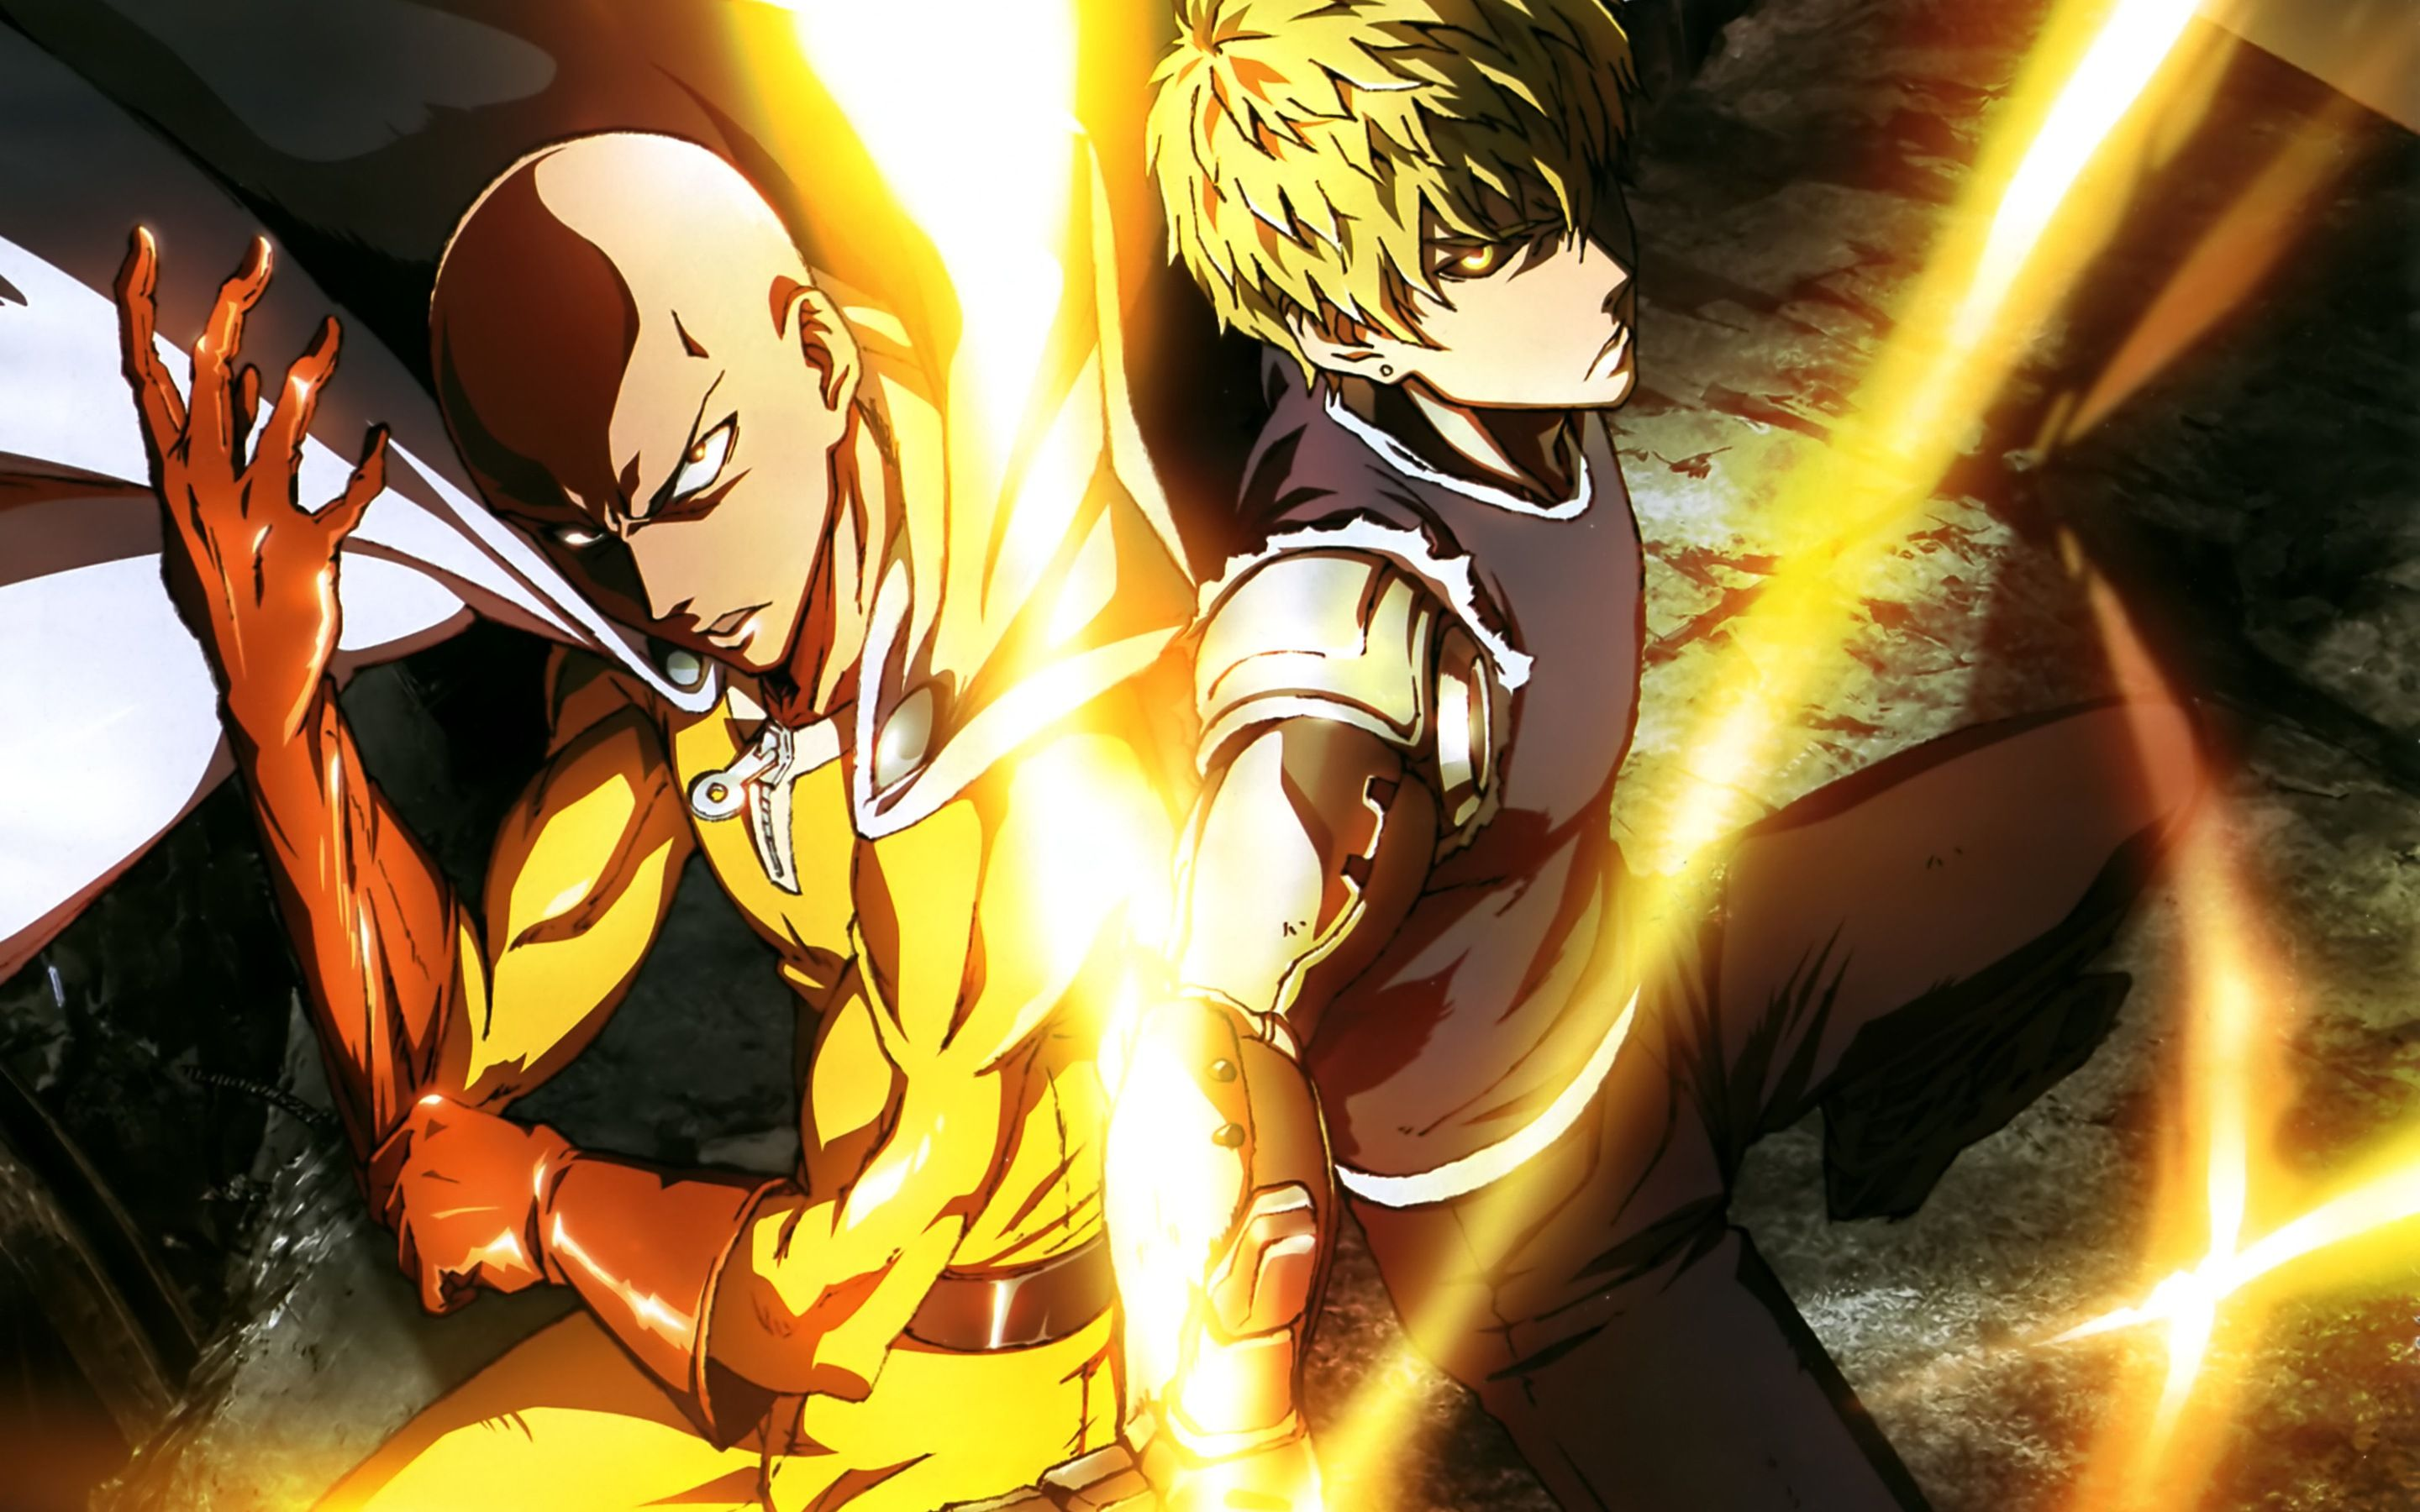 One Punch Man Saison 2 Episode 3 8 Anime Studios You Didn T Know Went Bankrupt Manga One Punch Man One Punch Man Saitama One Punch Man